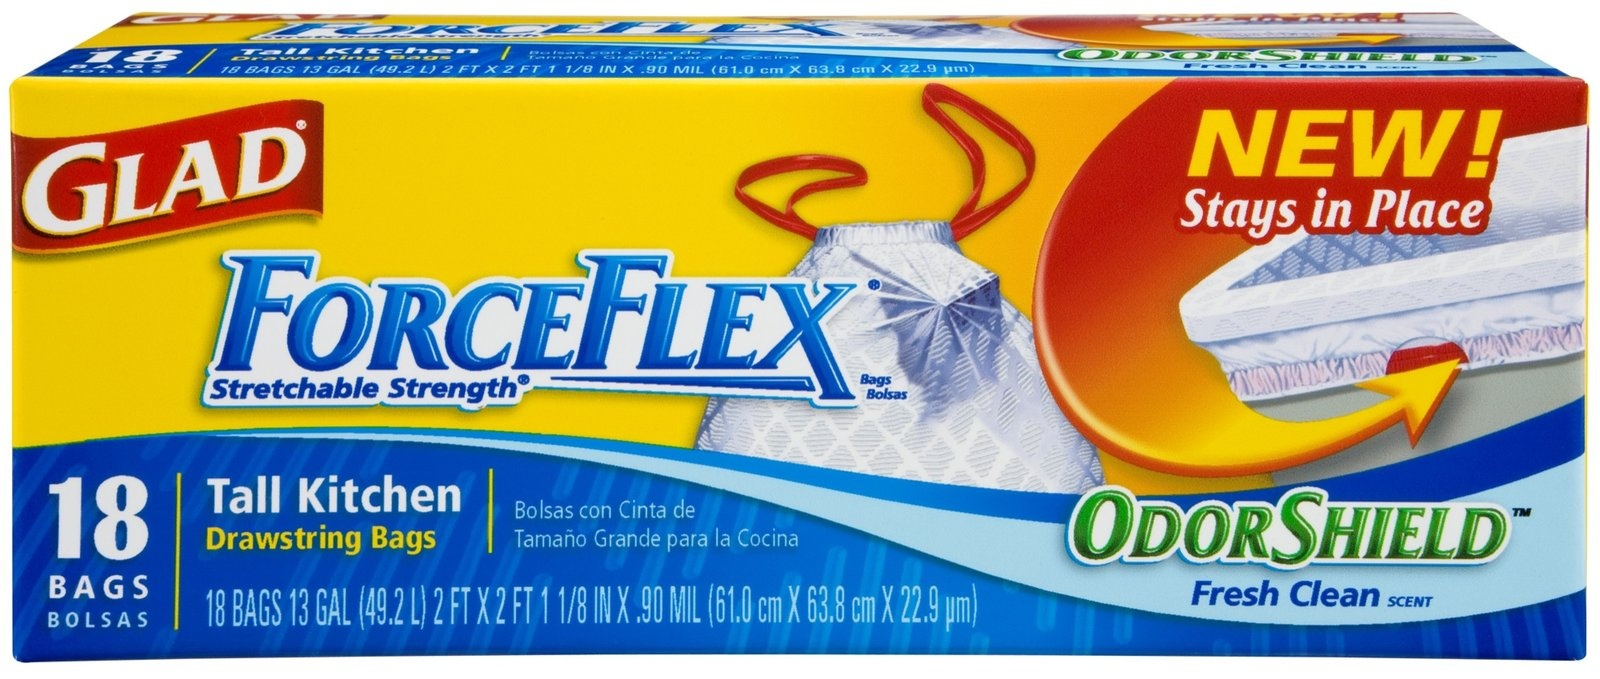 Printable Coupons For Glad Garbage Bags : Mills Fleet Farm Coupon - Free Printable Coupons For Trash Bags